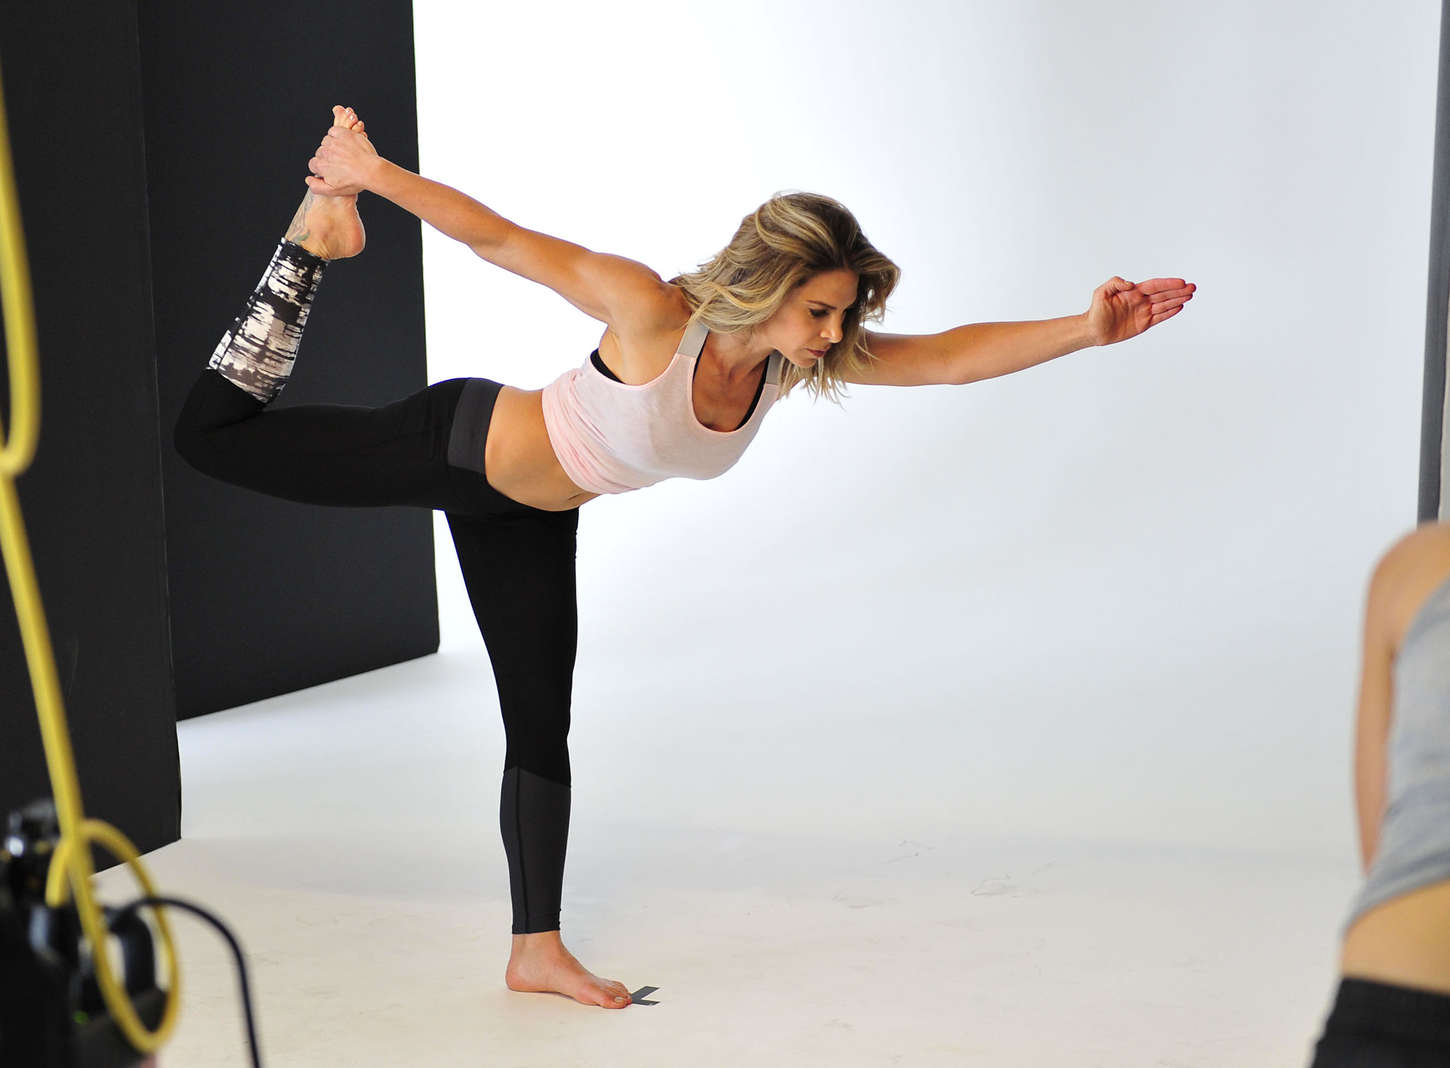 Jillian Michaels: Impact Collection 2015 -08 - GotCeleb | 1450 x 1068 jpeg 68kB